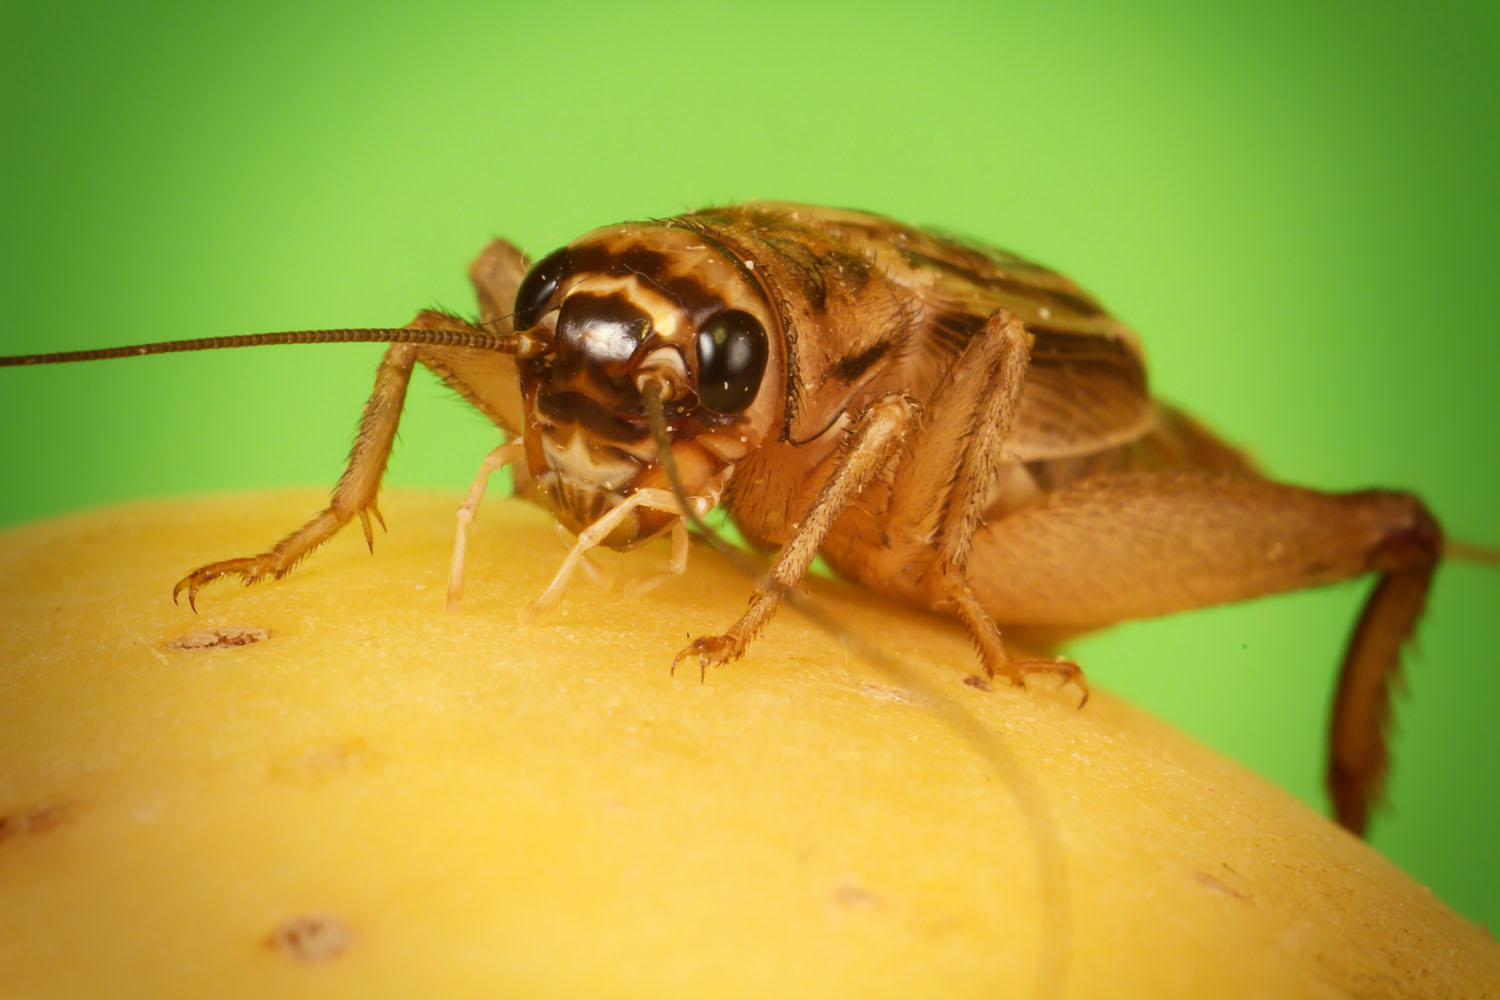 House_cricket_cvrcek_domaci.jpg